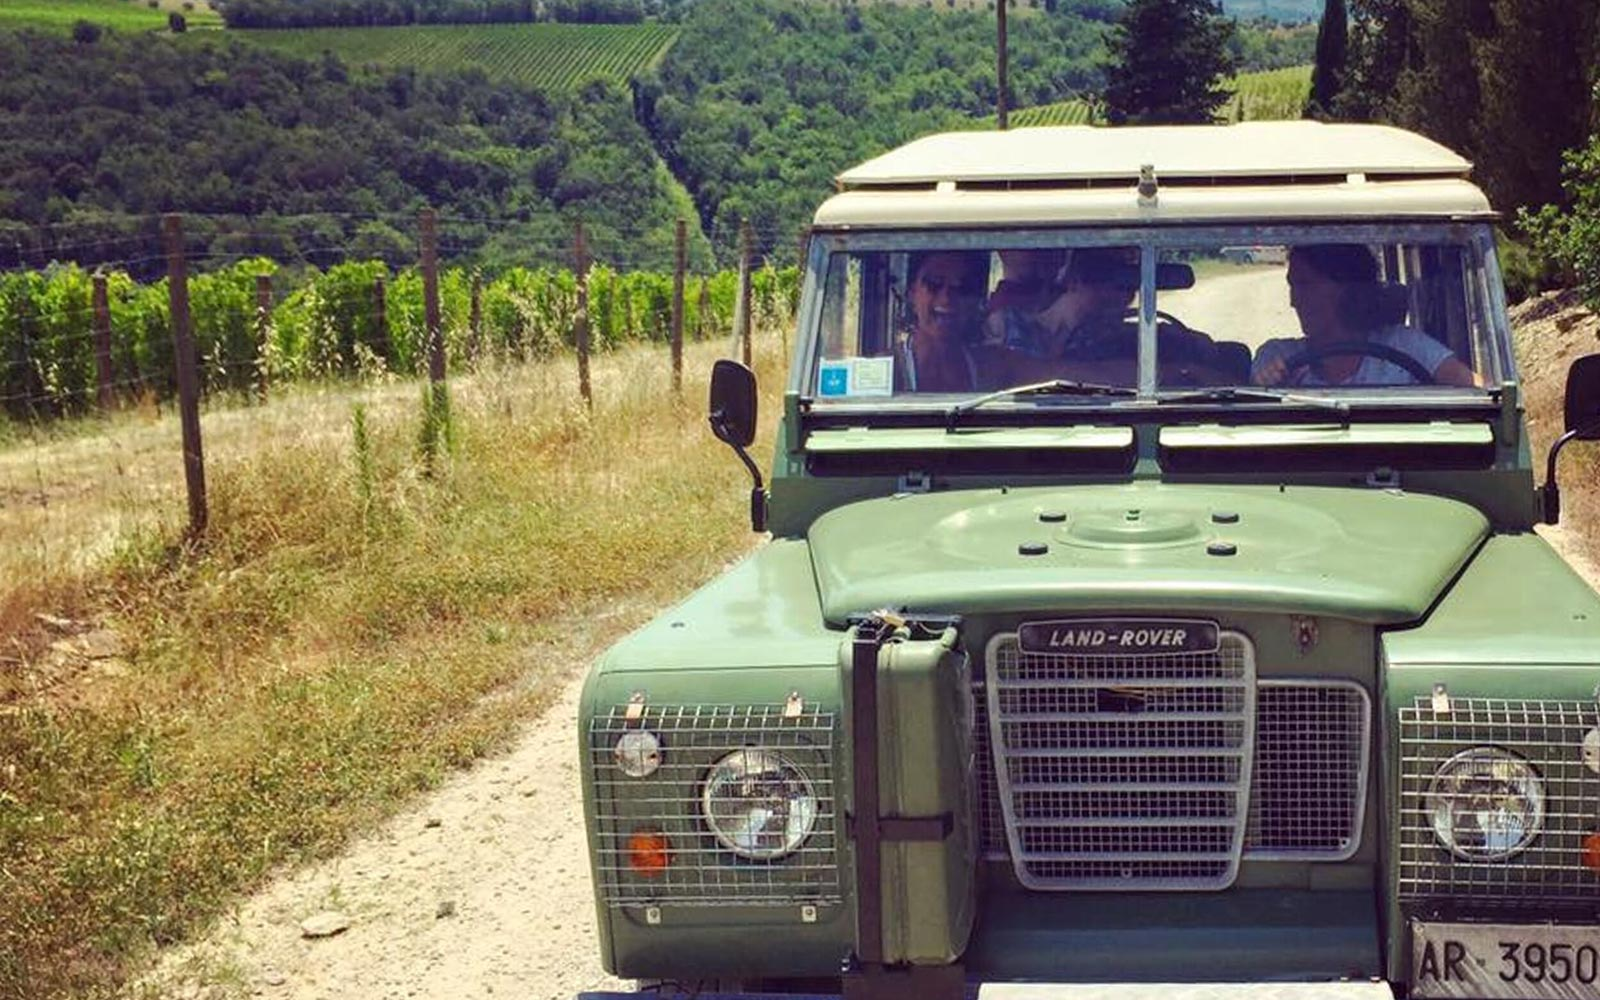 This Boozy Jeep Tour Through Tuscany Includes 15 Wine Tastings and Lunch